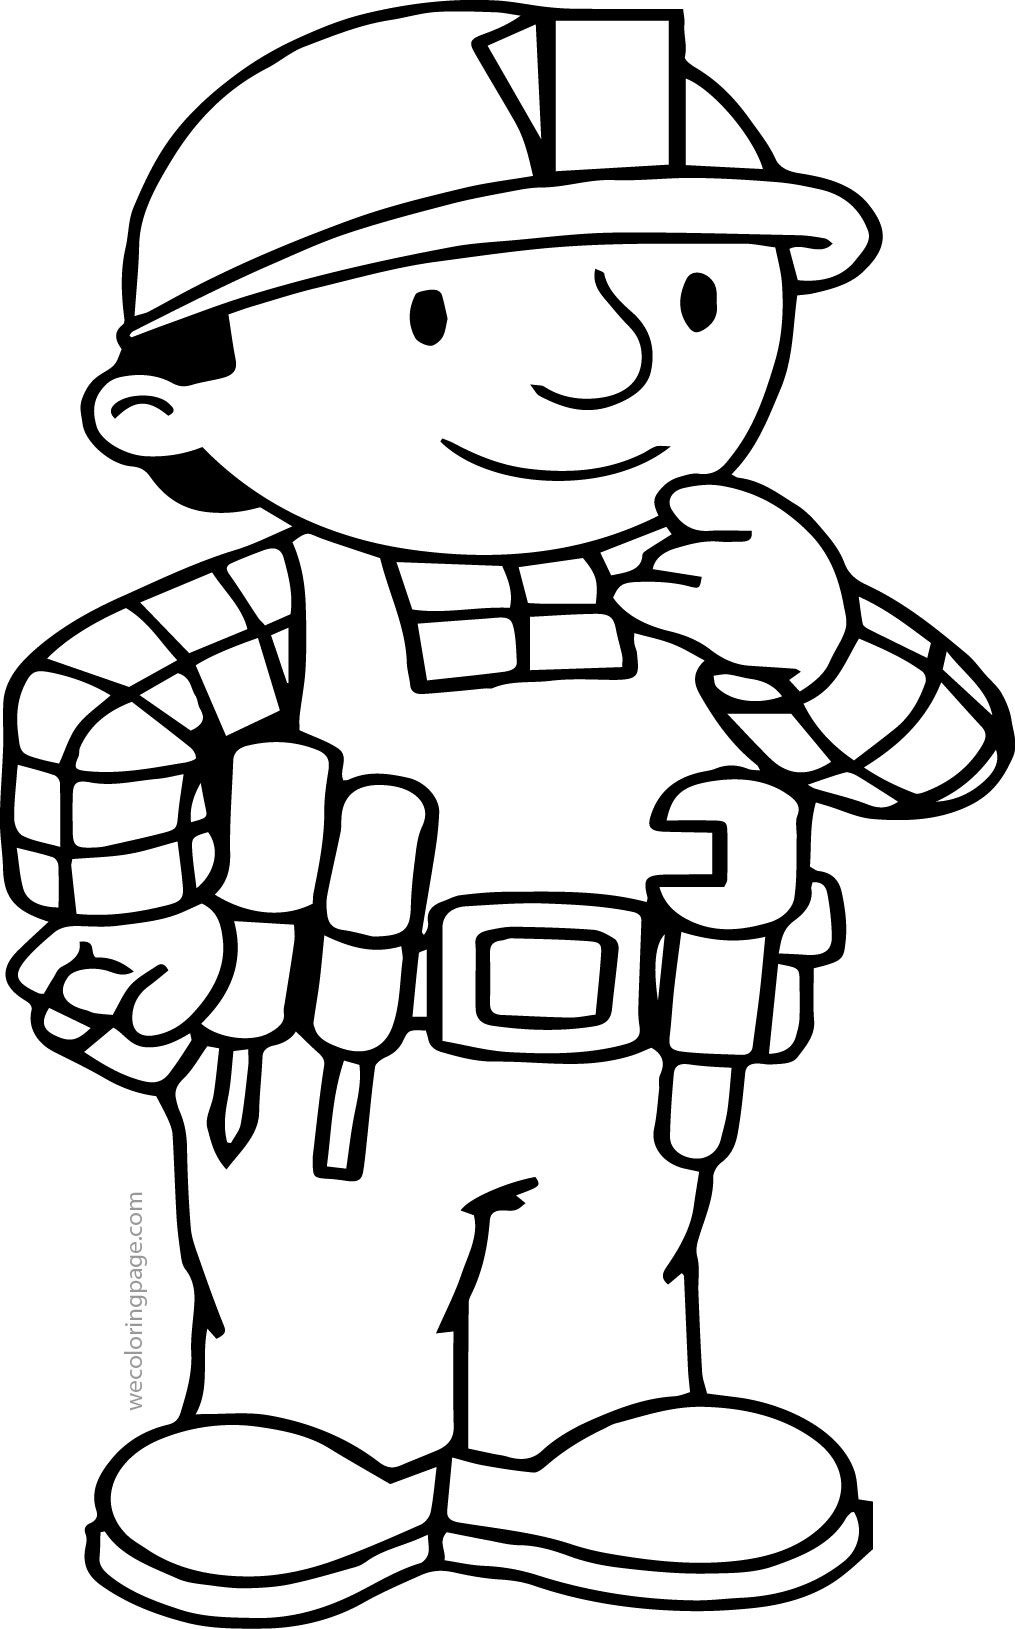 Nice Bob The Builder Think Coloring Page Teddy Bear Coloring Pages Bear Coloring Pages Coloring Pages [ 1629 x 1015 Pixel ]